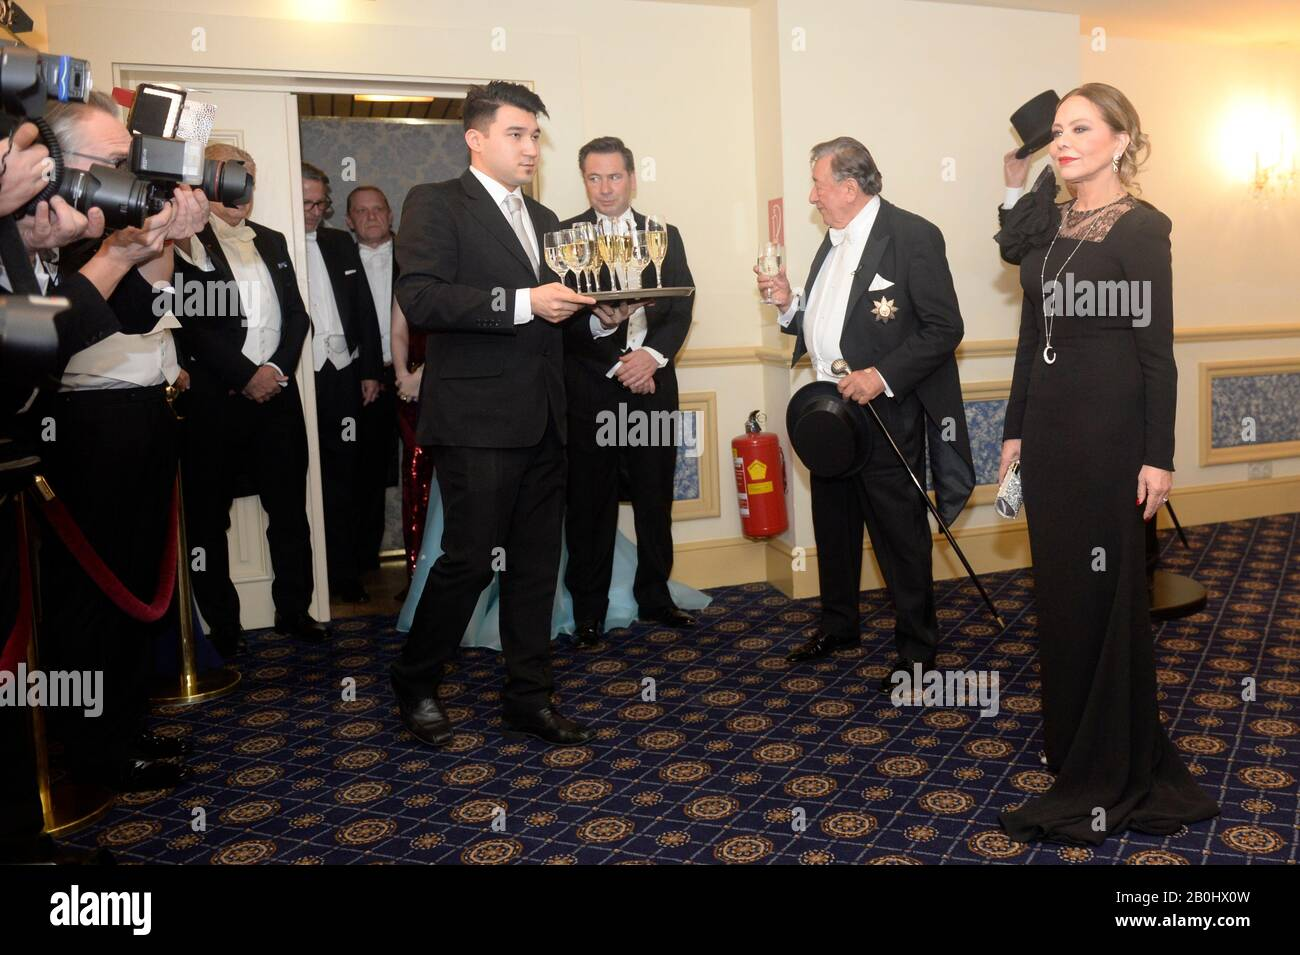 Vienna, Austria. 20th Feb, 2020. Photocall with Ornella Muti in evening dress for the Opera Ball 2020 in Vienna. Picture shows Ornella Muti in the evening dress on the far right. Credit: Franz Perc / Alamy Live News Stock Photo